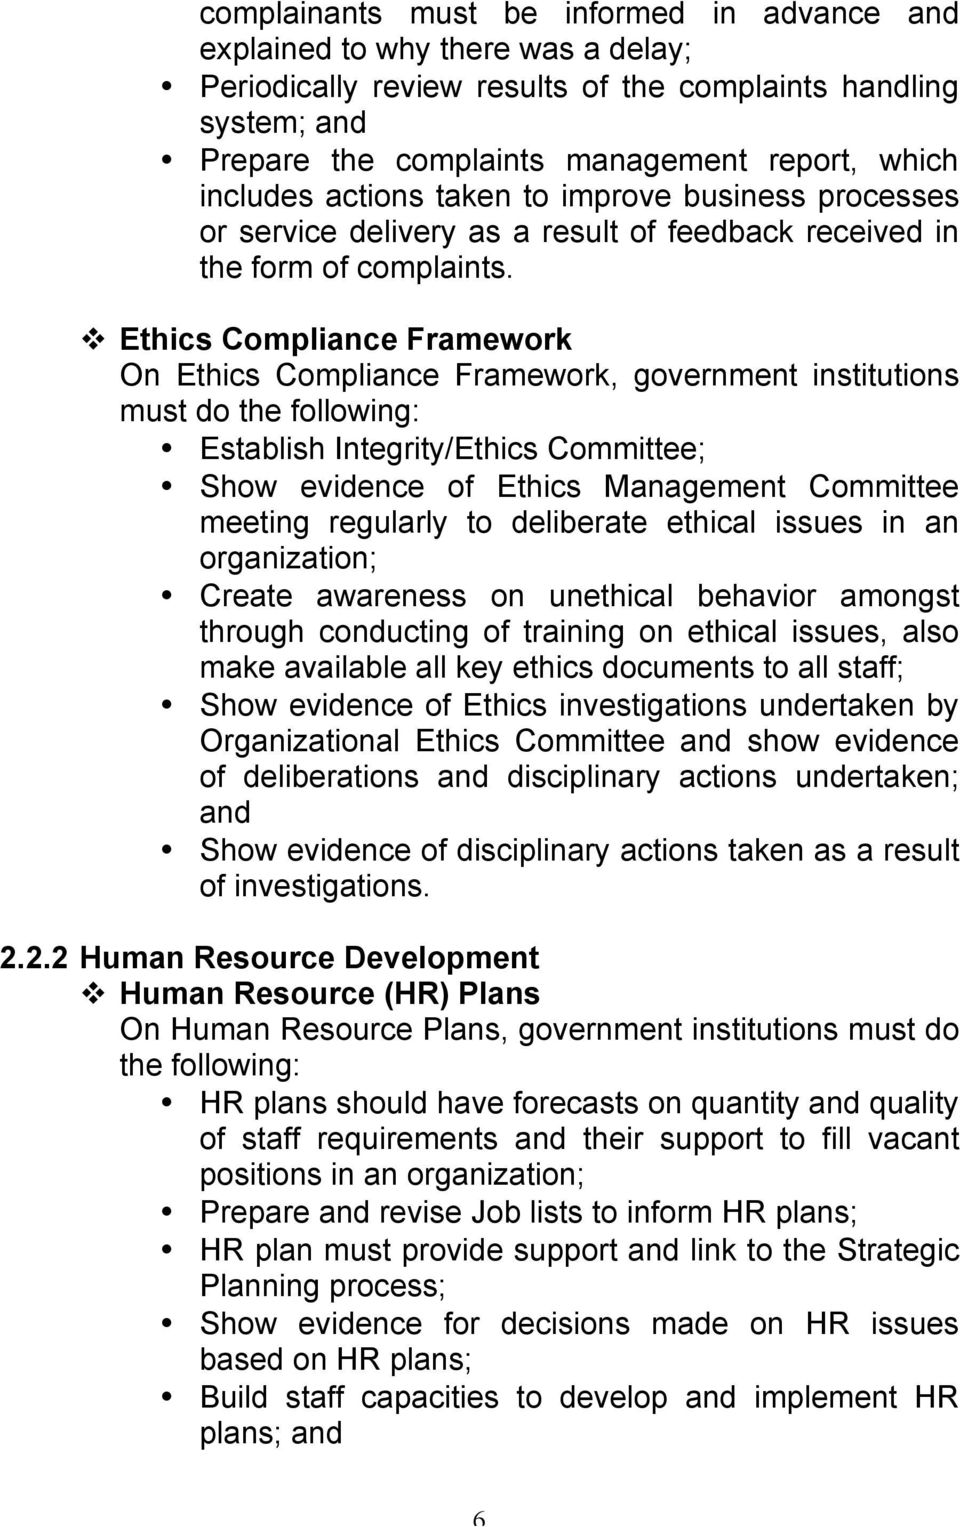 Ethics Compliance Framework On Ethics Compliance Framework, government institutions must do the following: Establish Integrity/Ethics Committee; Show evidence of Ethics Management Committee meeting